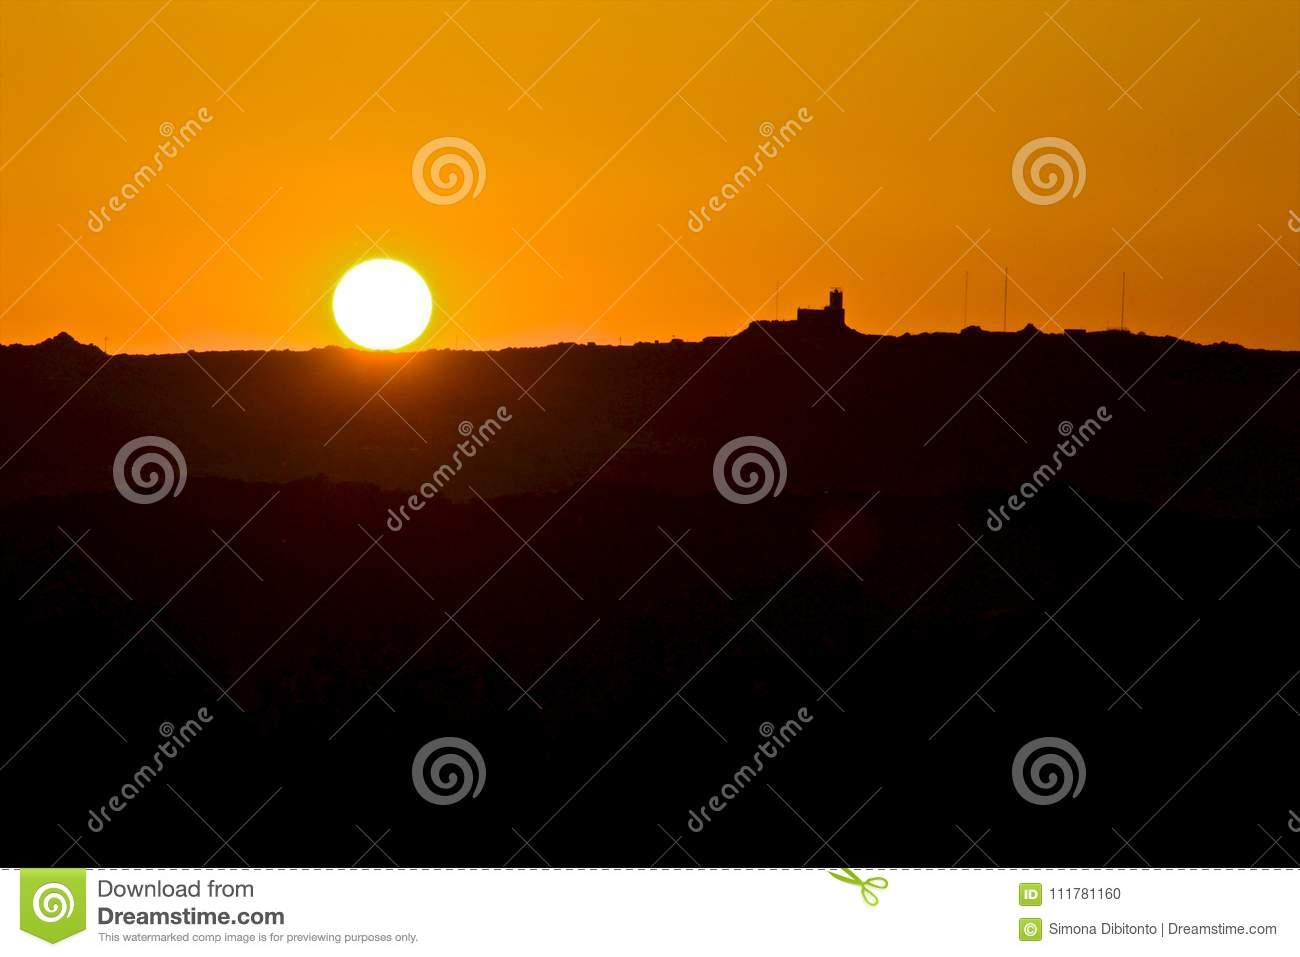 Silhouette of mountain and the sun at sunset with orange sky